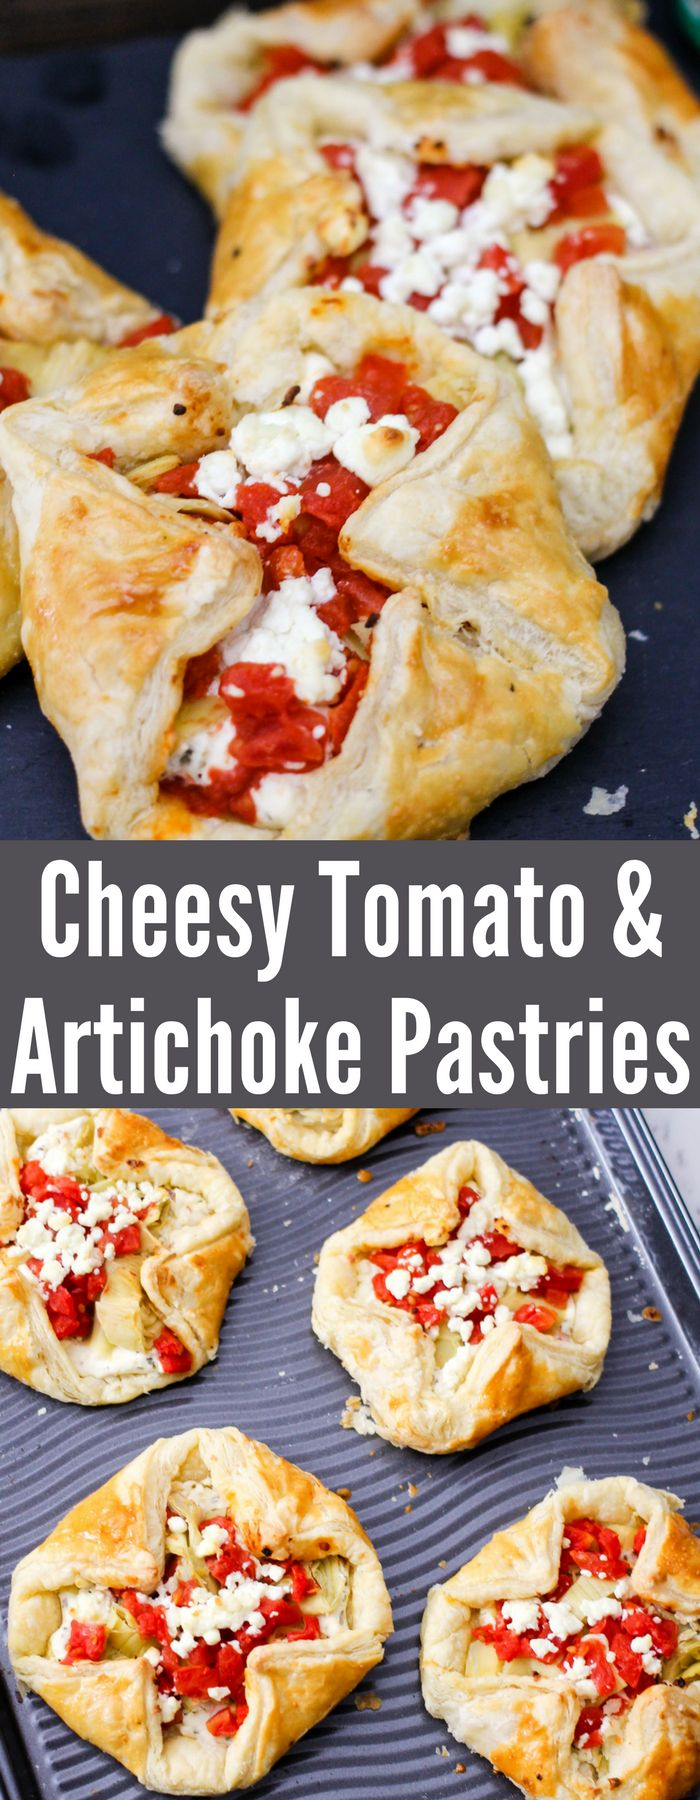 These savory pastries are filled with tomatoes, artichokes, cream cheese, and delicious goat cheese! Only a few minutes to whip up and you have tasty pastries! #ad @tuttorosso